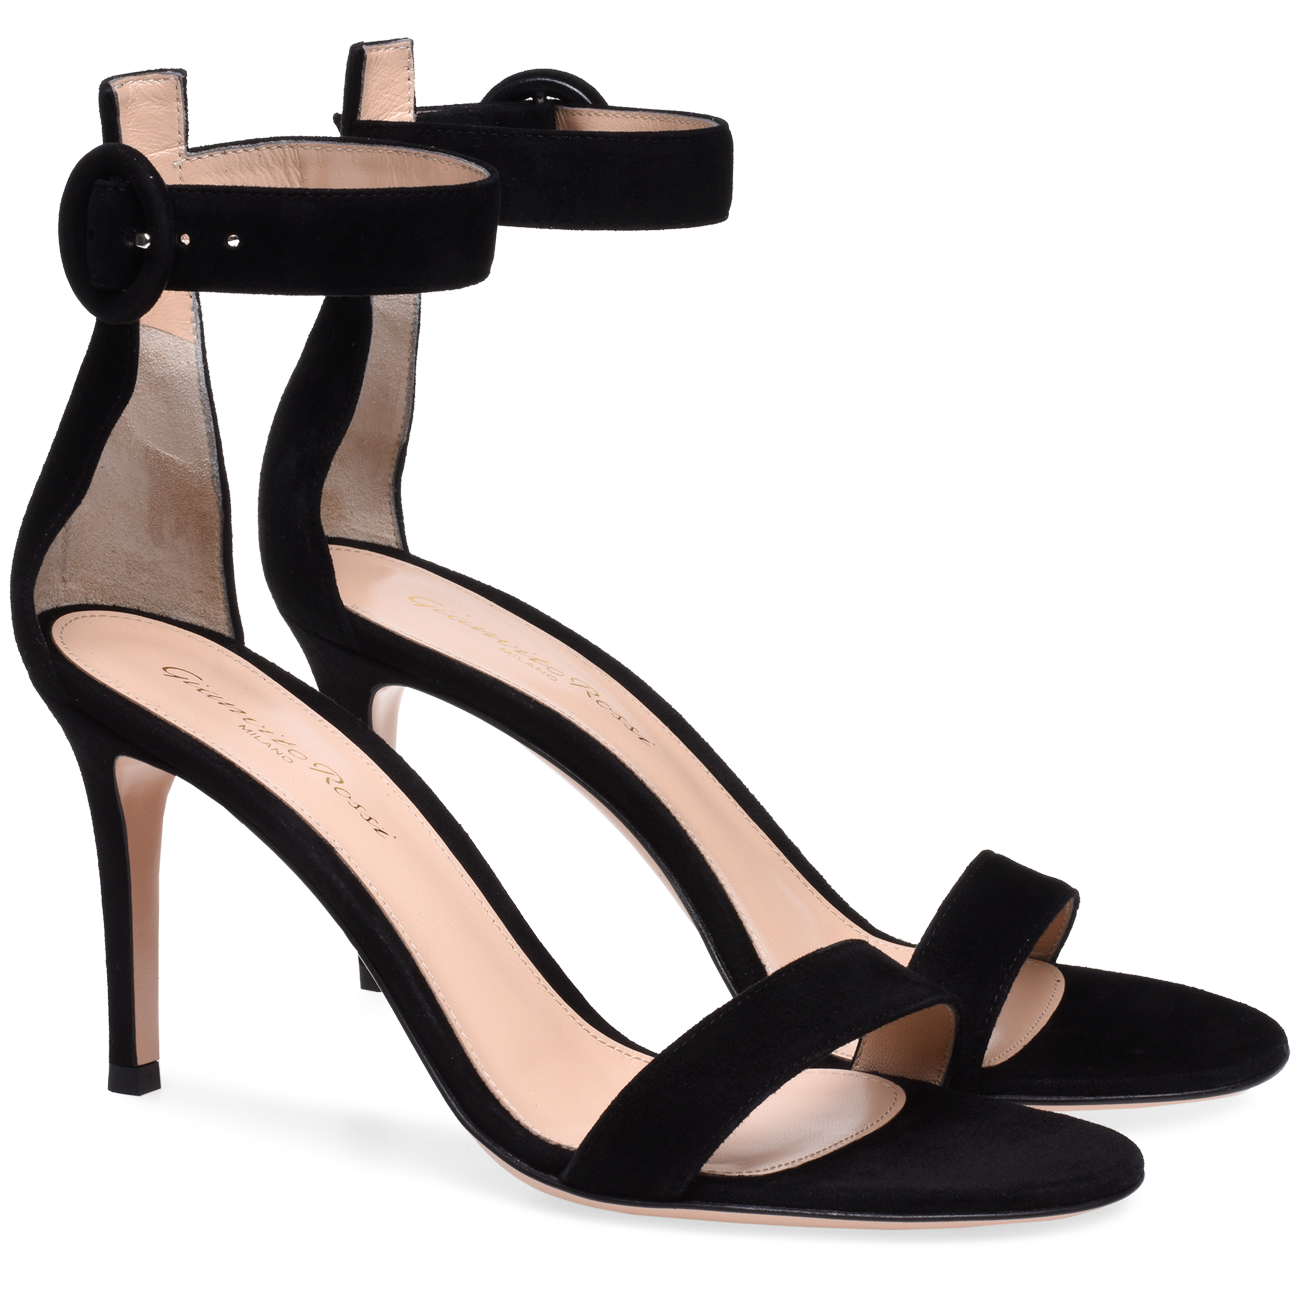 shop gianvito rossi shoes